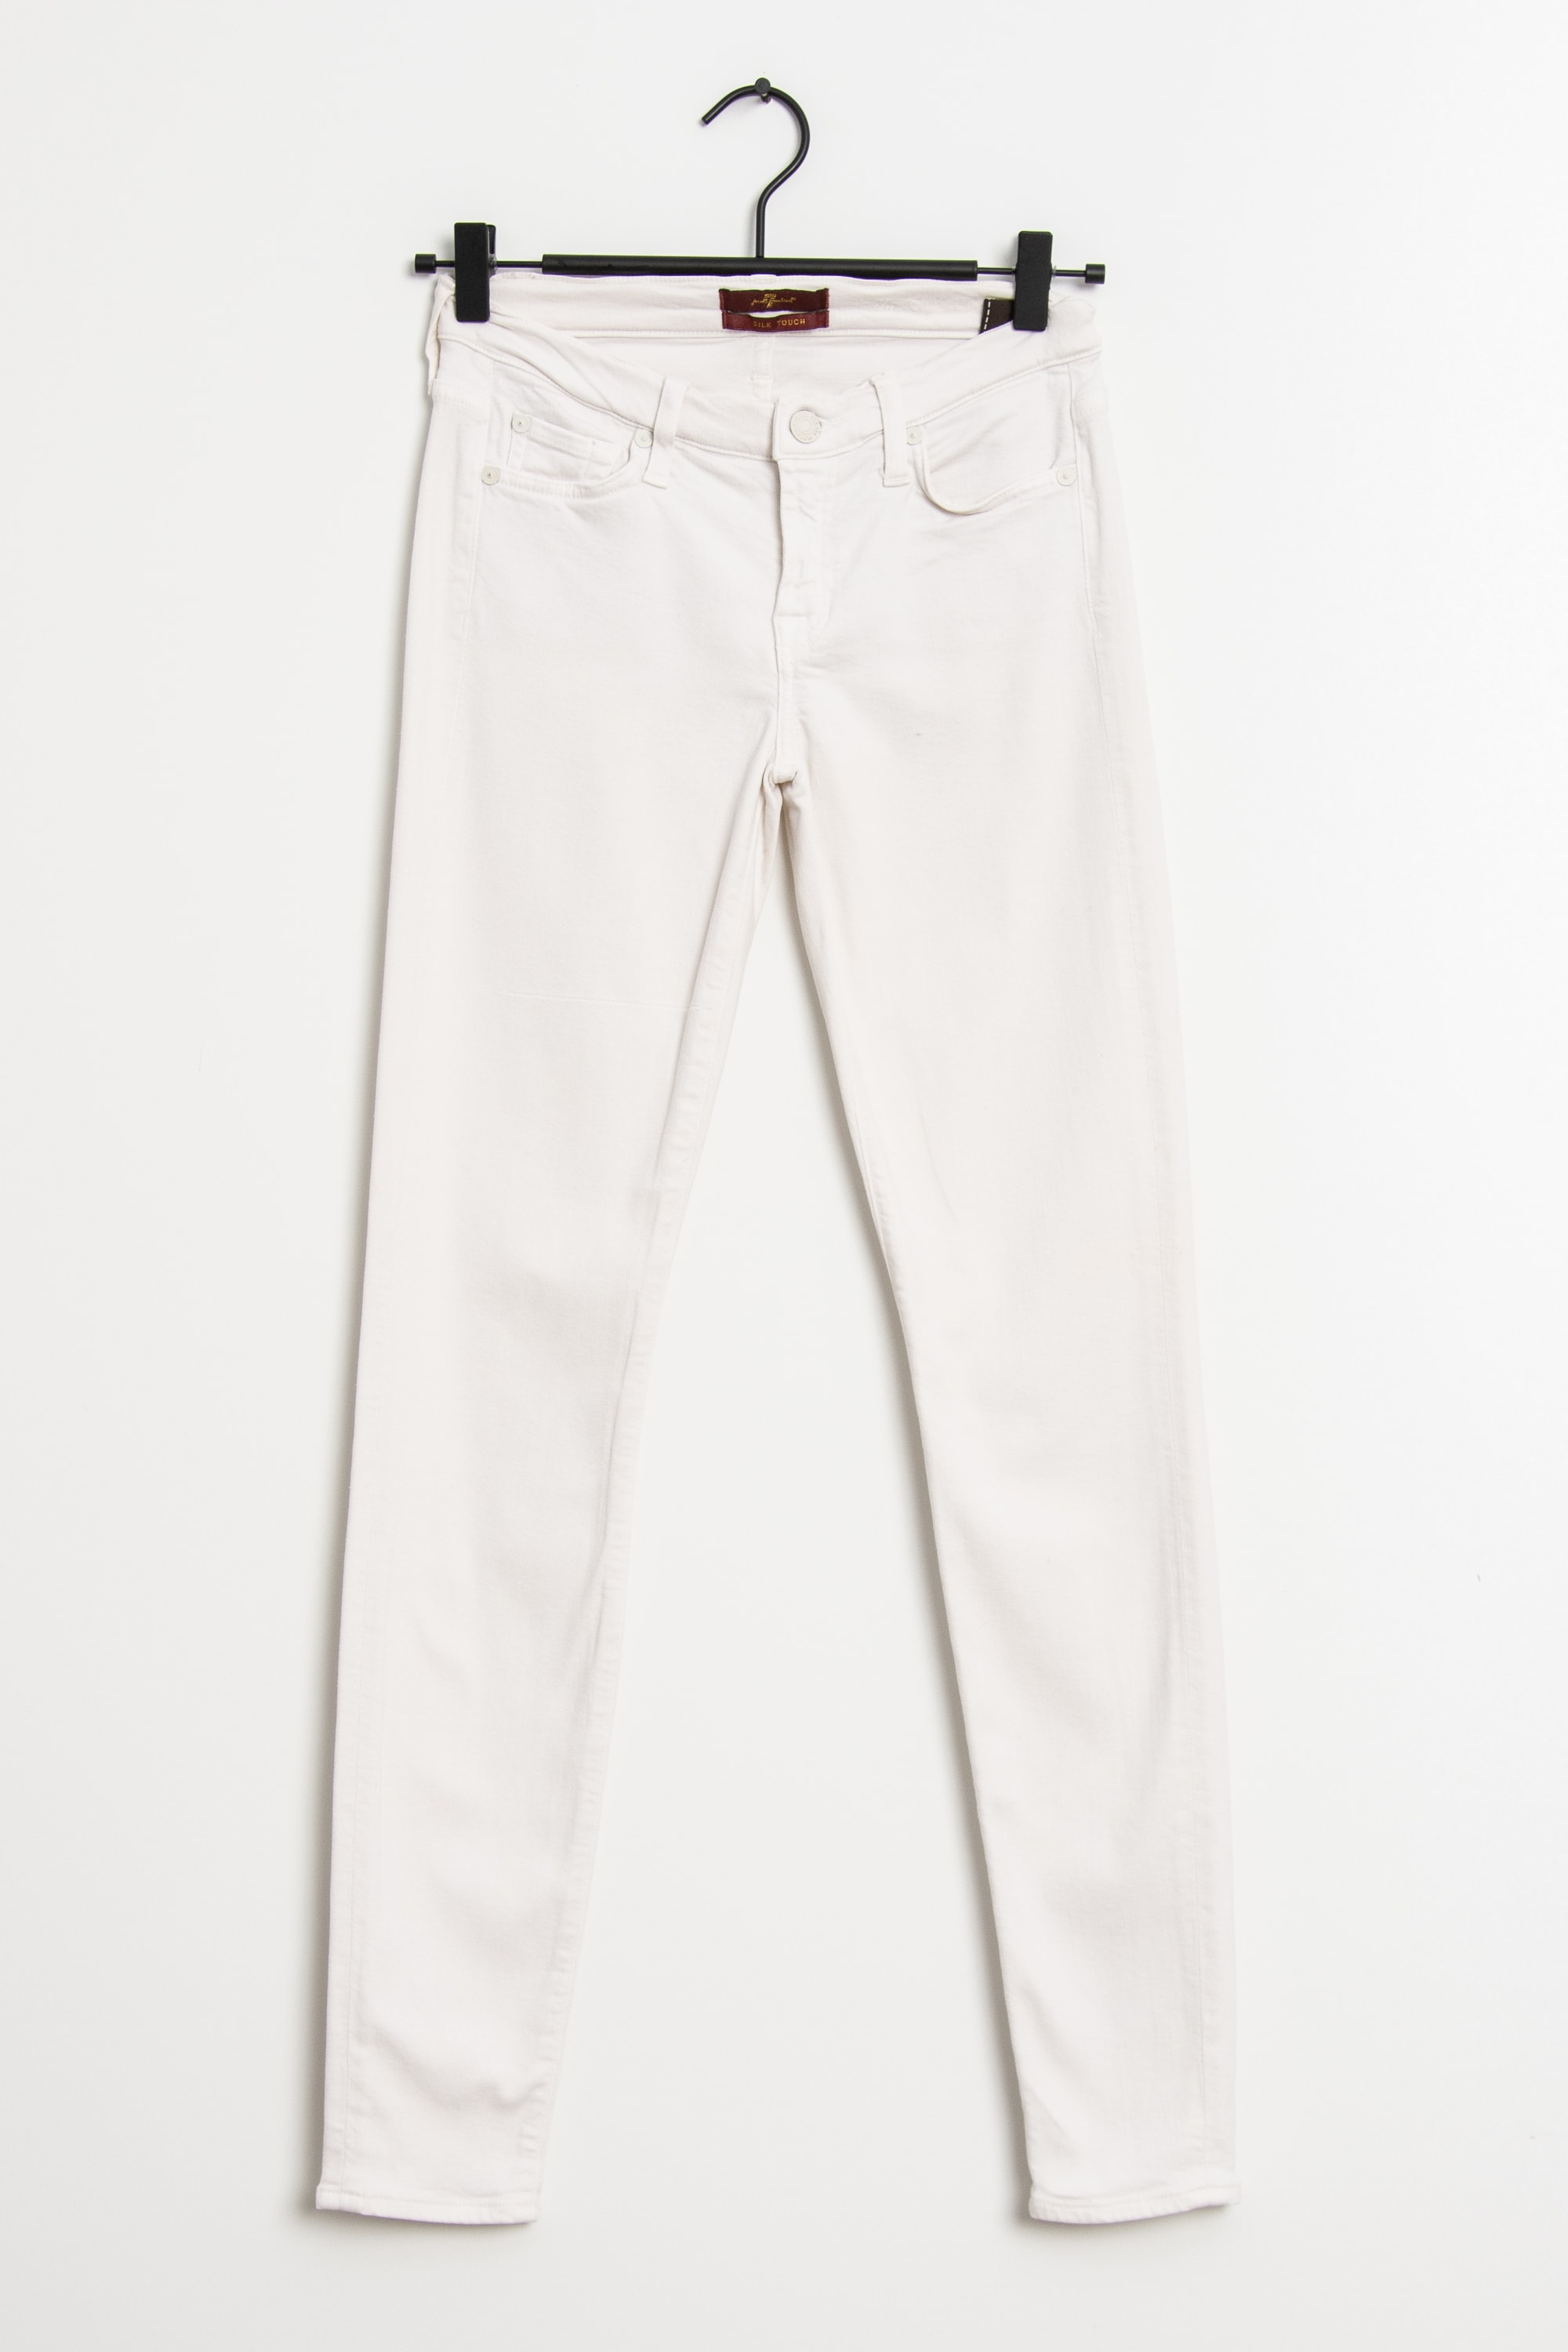 7 for all mankind Stoffhose Weiß Gr.S